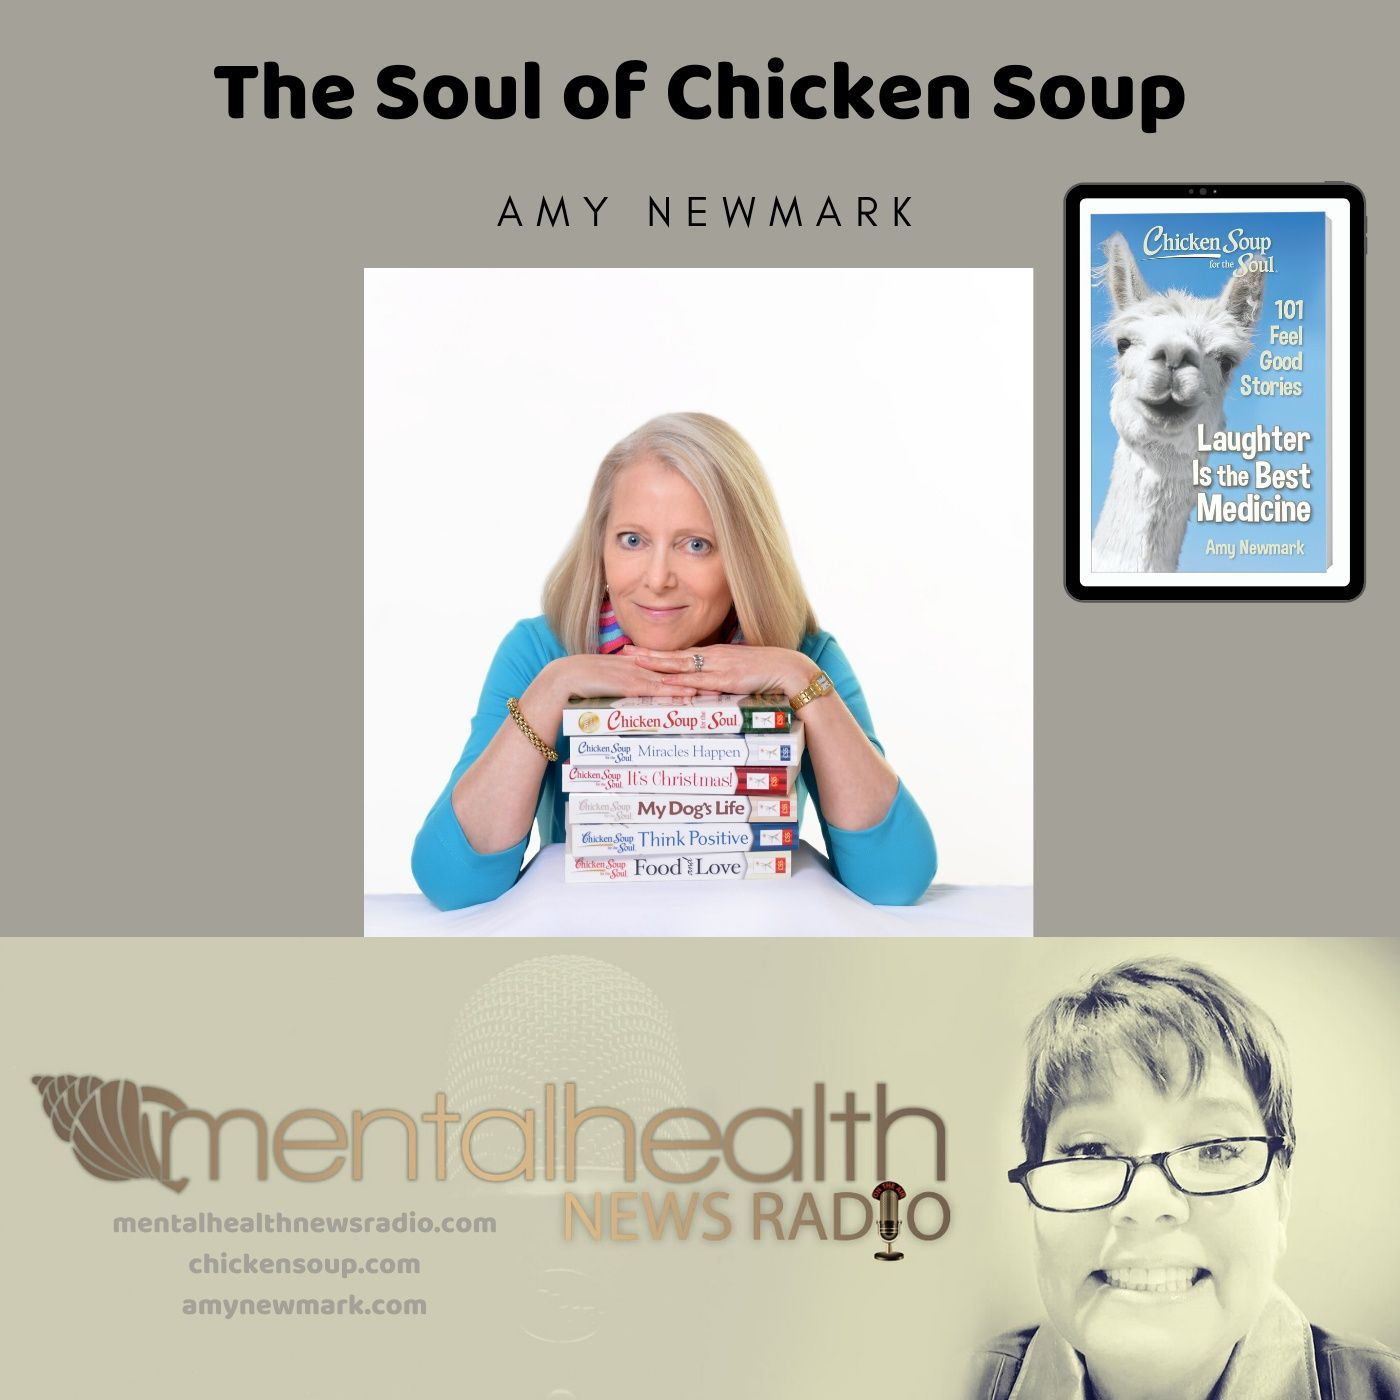 Mental Health News Radio - The Soul of Chicken Soup with Amy Newmark